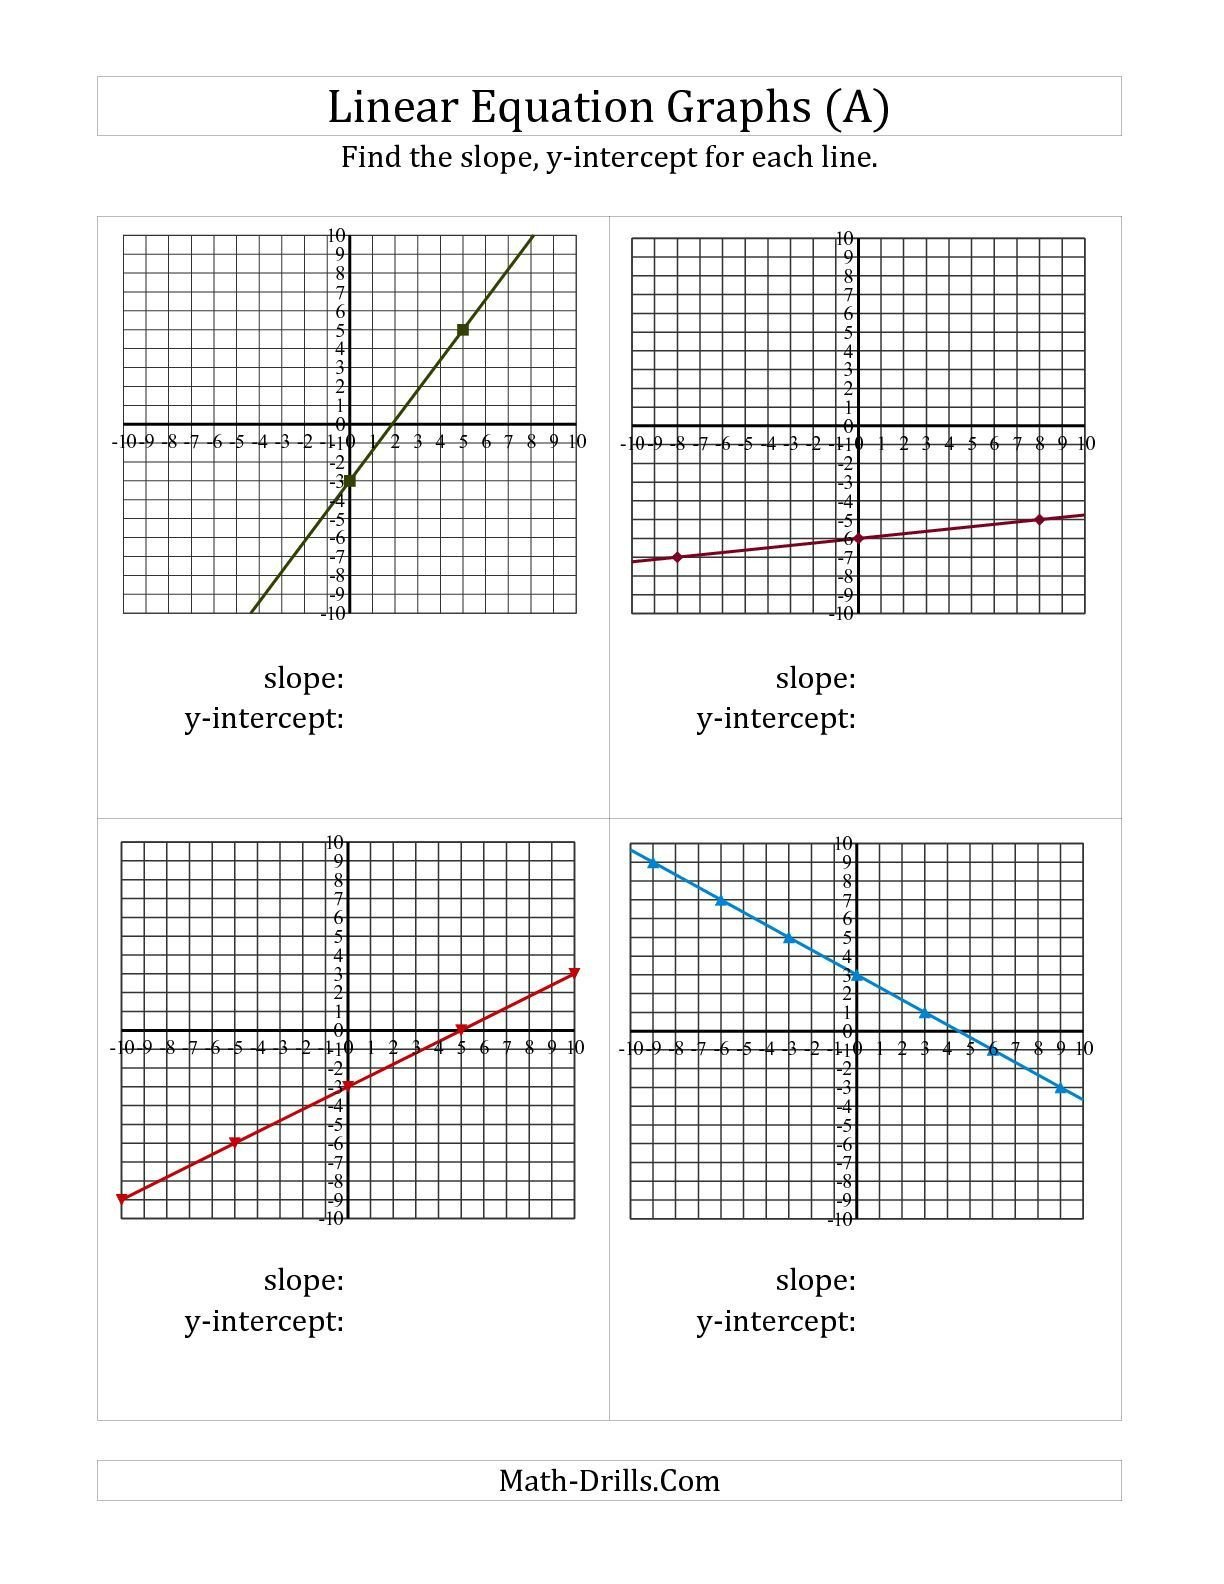 Linear Equations From Tables Worksheet the Finding Slope and Y Intercept From A Linear Equation